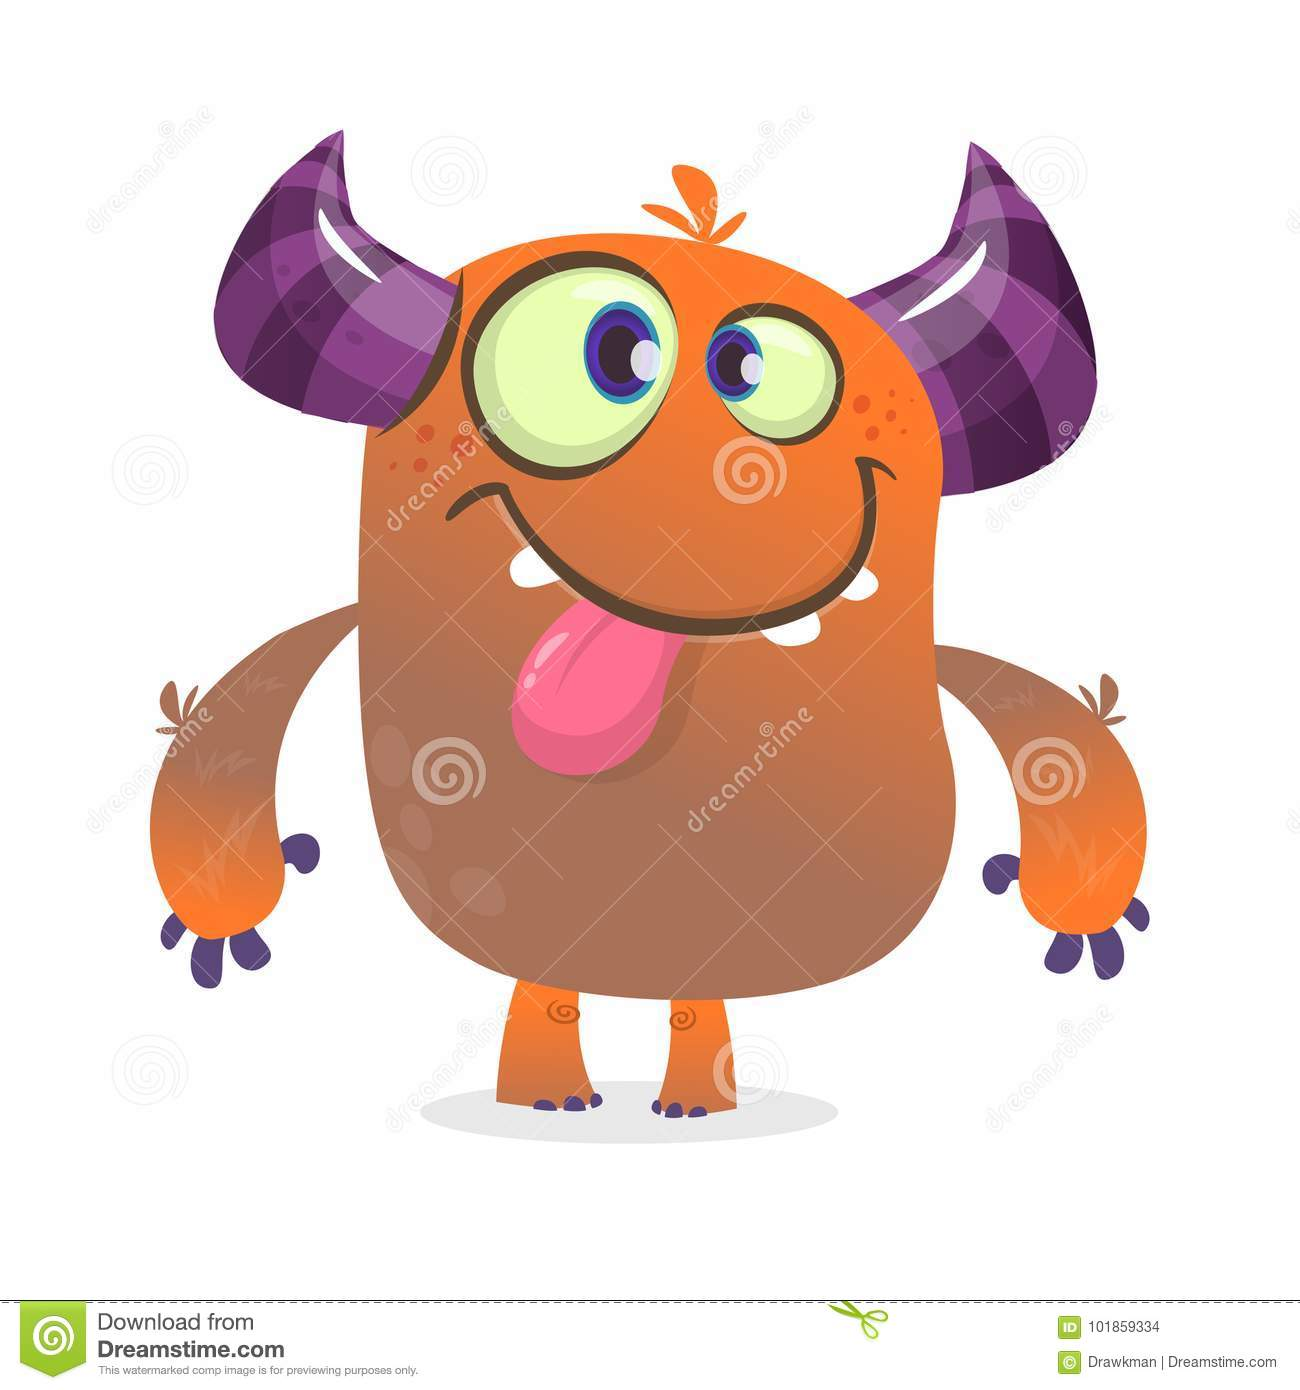 cute angry cartoon monster. vector furry orange monster character